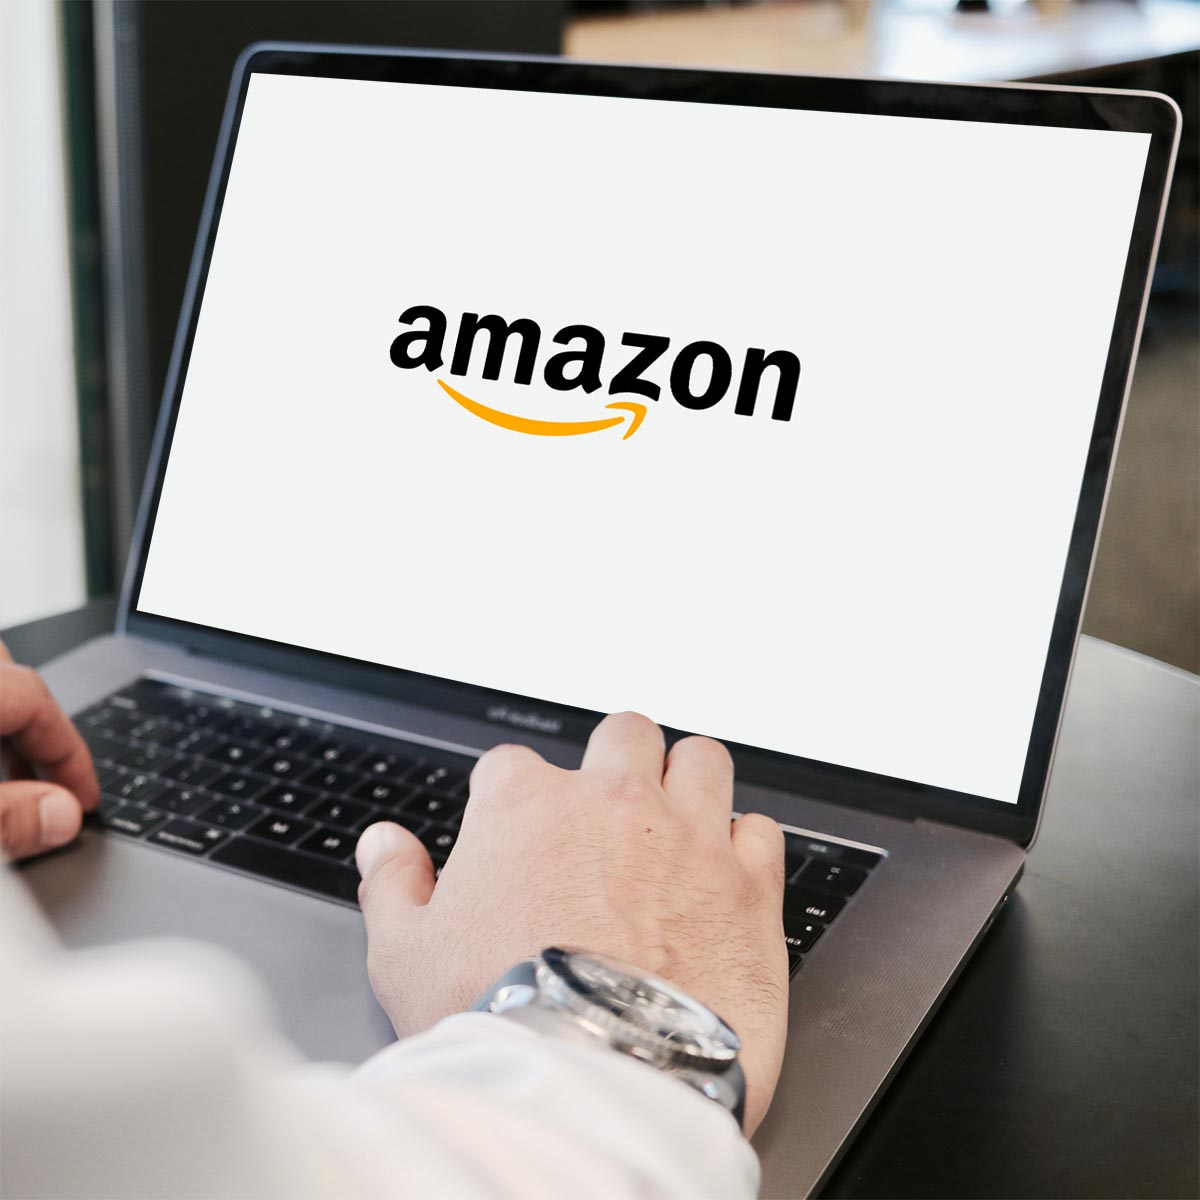 Amazon Logo on Laptop - Fulfilment